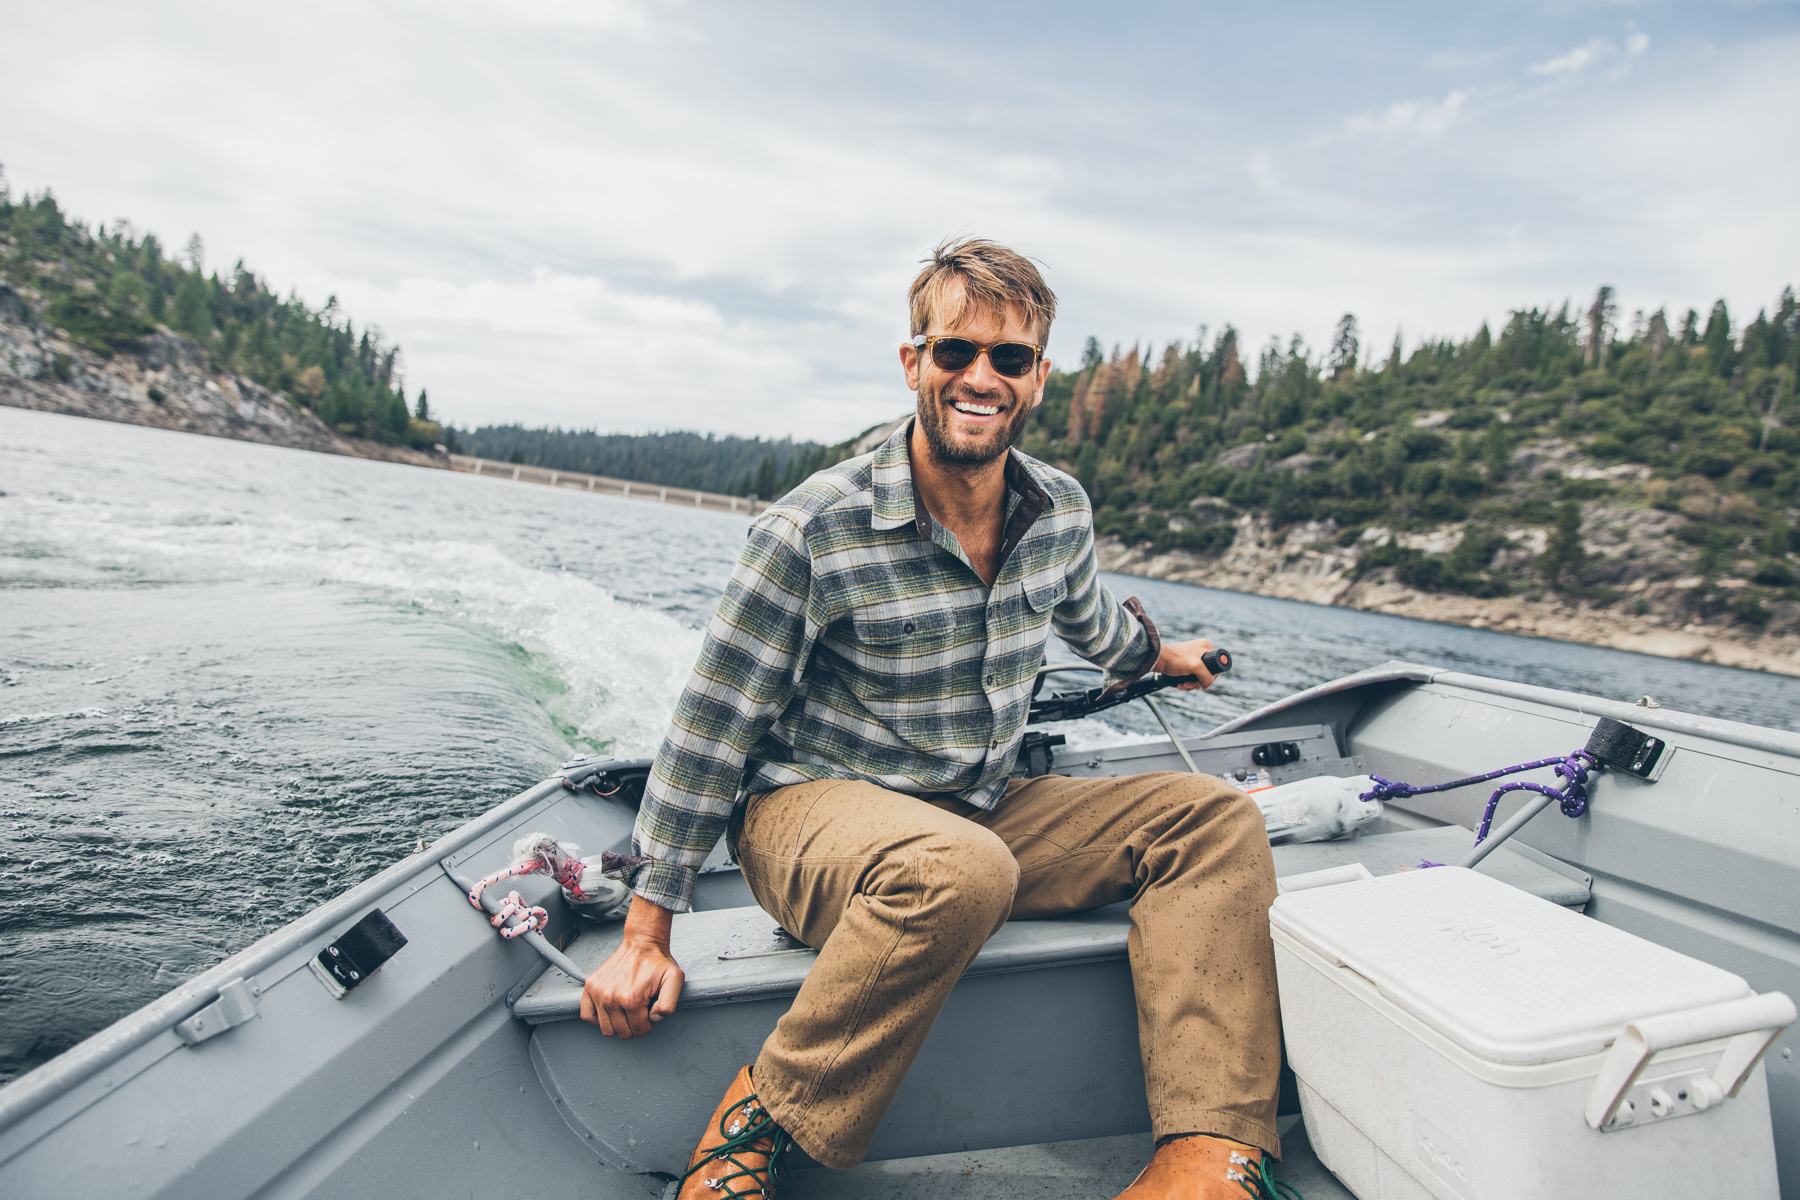 Outdoorsy Man Boating